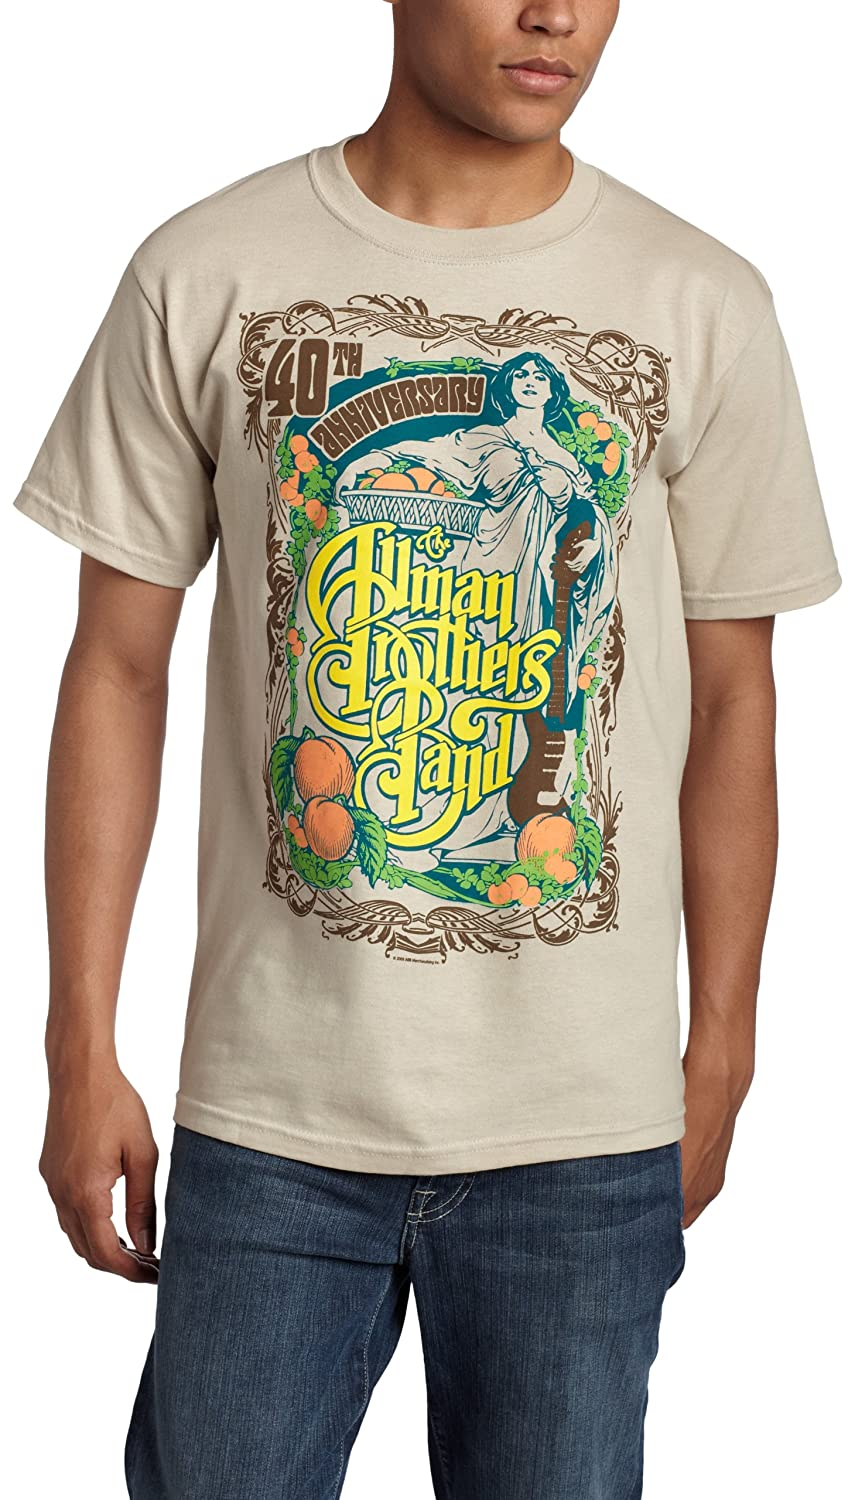 FEA - Camiseta - Hombre de color Gris de talla X-Large - Allman Brothers 40th Anniversary Angel Tan (Camiseta)-xl: Amazon.es: Ropa y accesorios